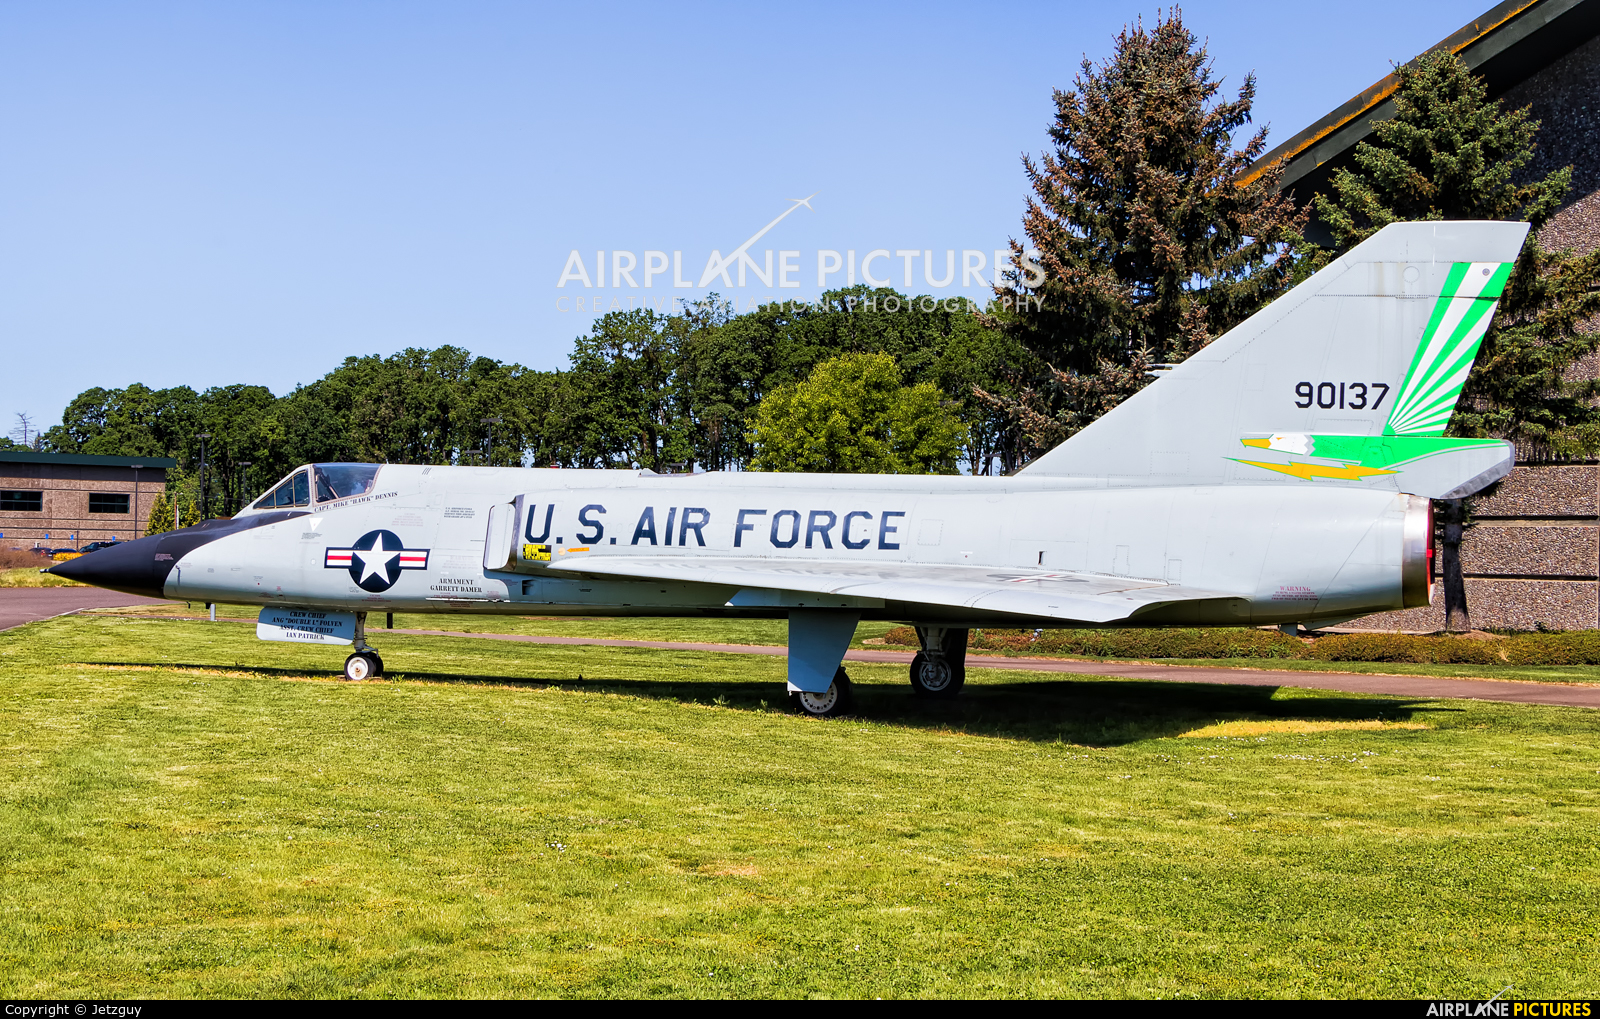 USA - Air Force 59-0137 aircraft at McMinnville - Evergreen Aviation & Space Museum